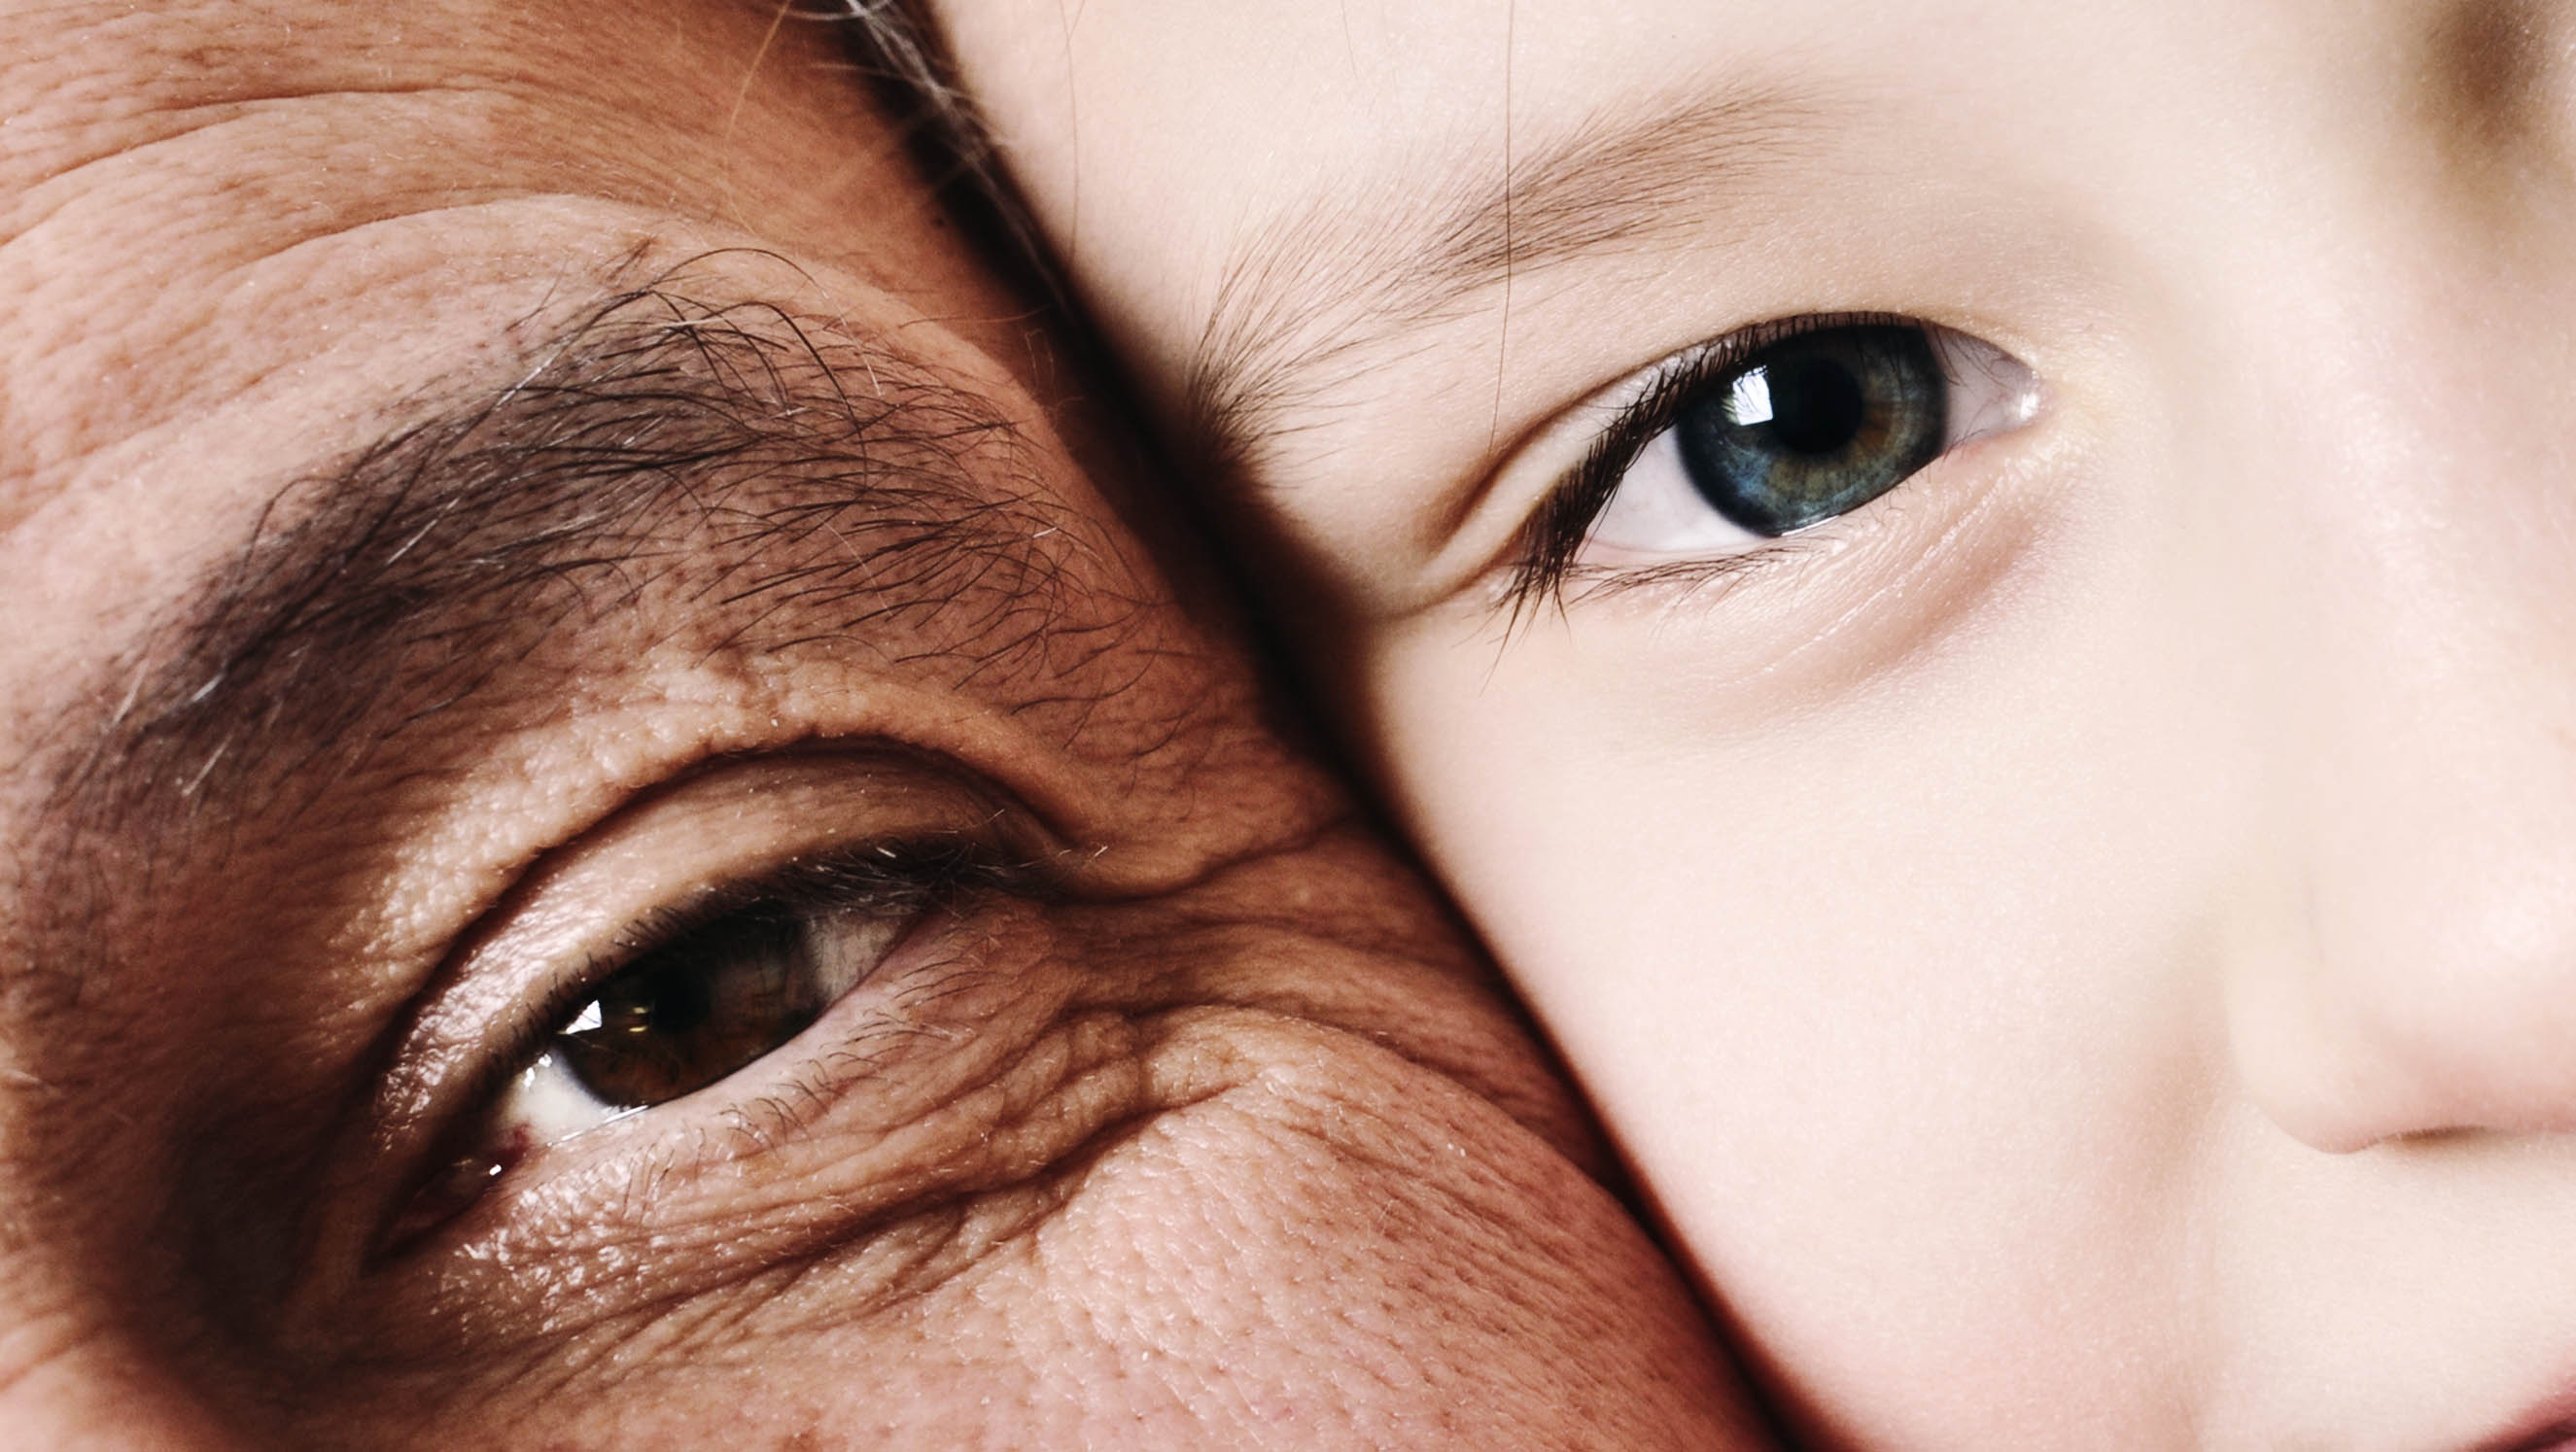 Person with aging skin next to child with young skin